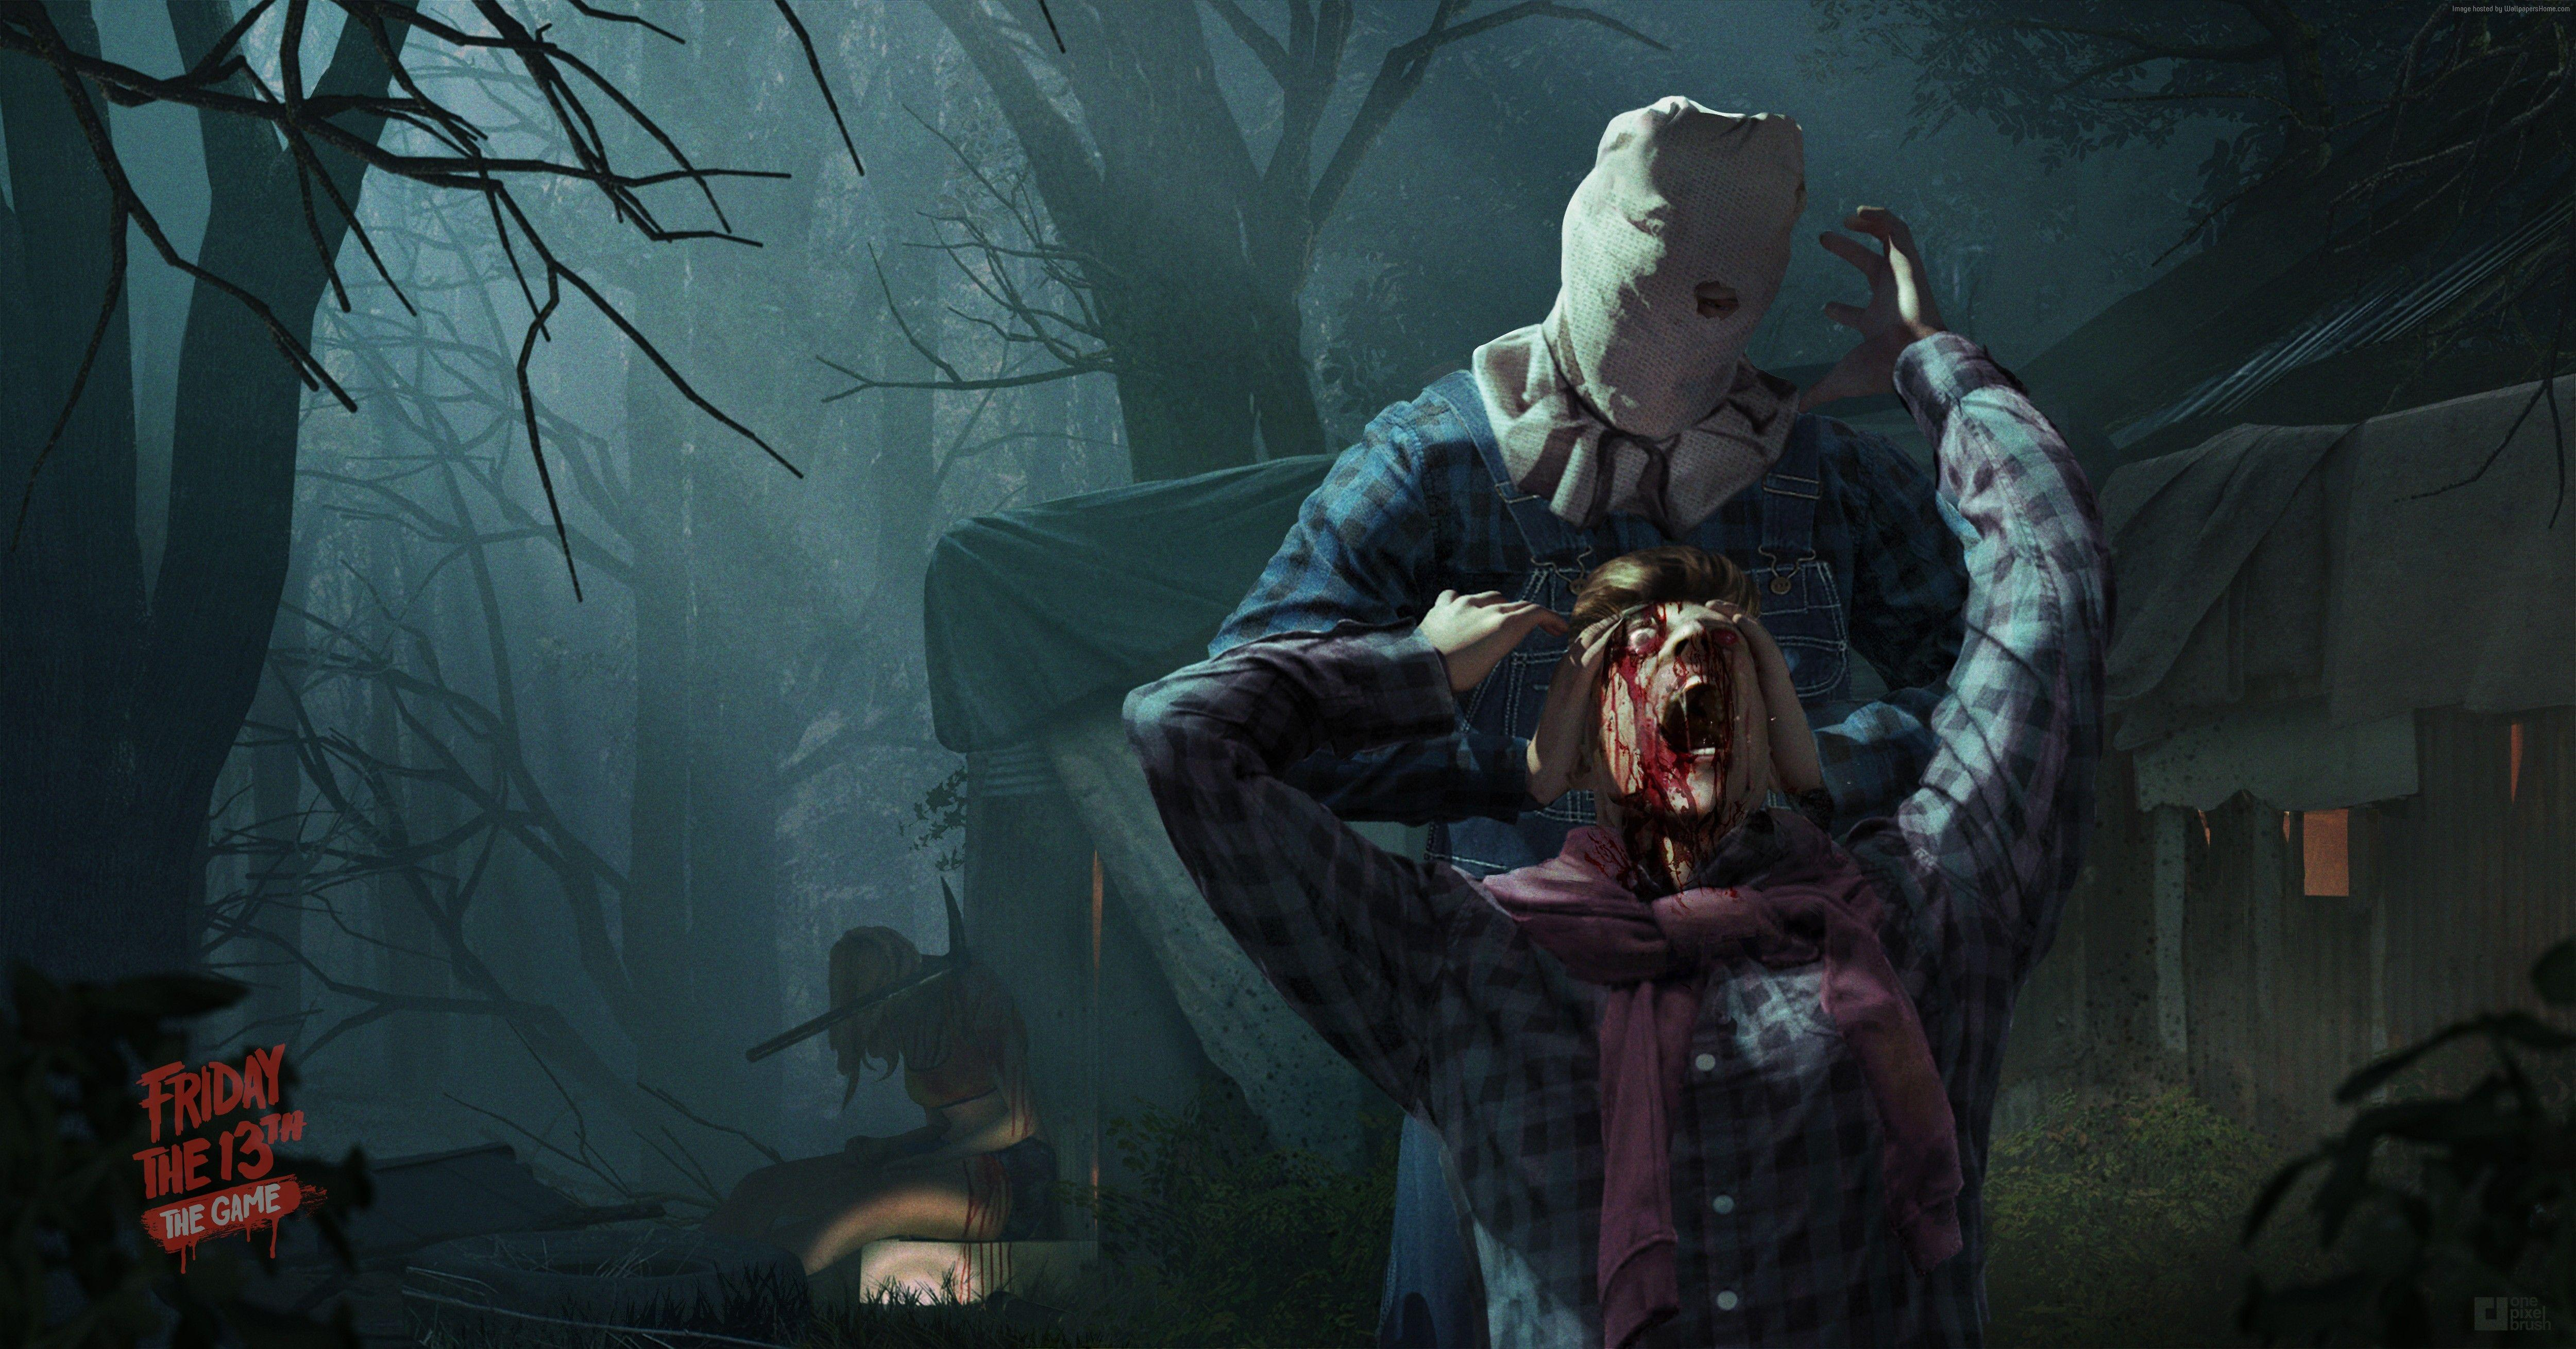 3 Friday The 13th: The Game HD Wallpapers